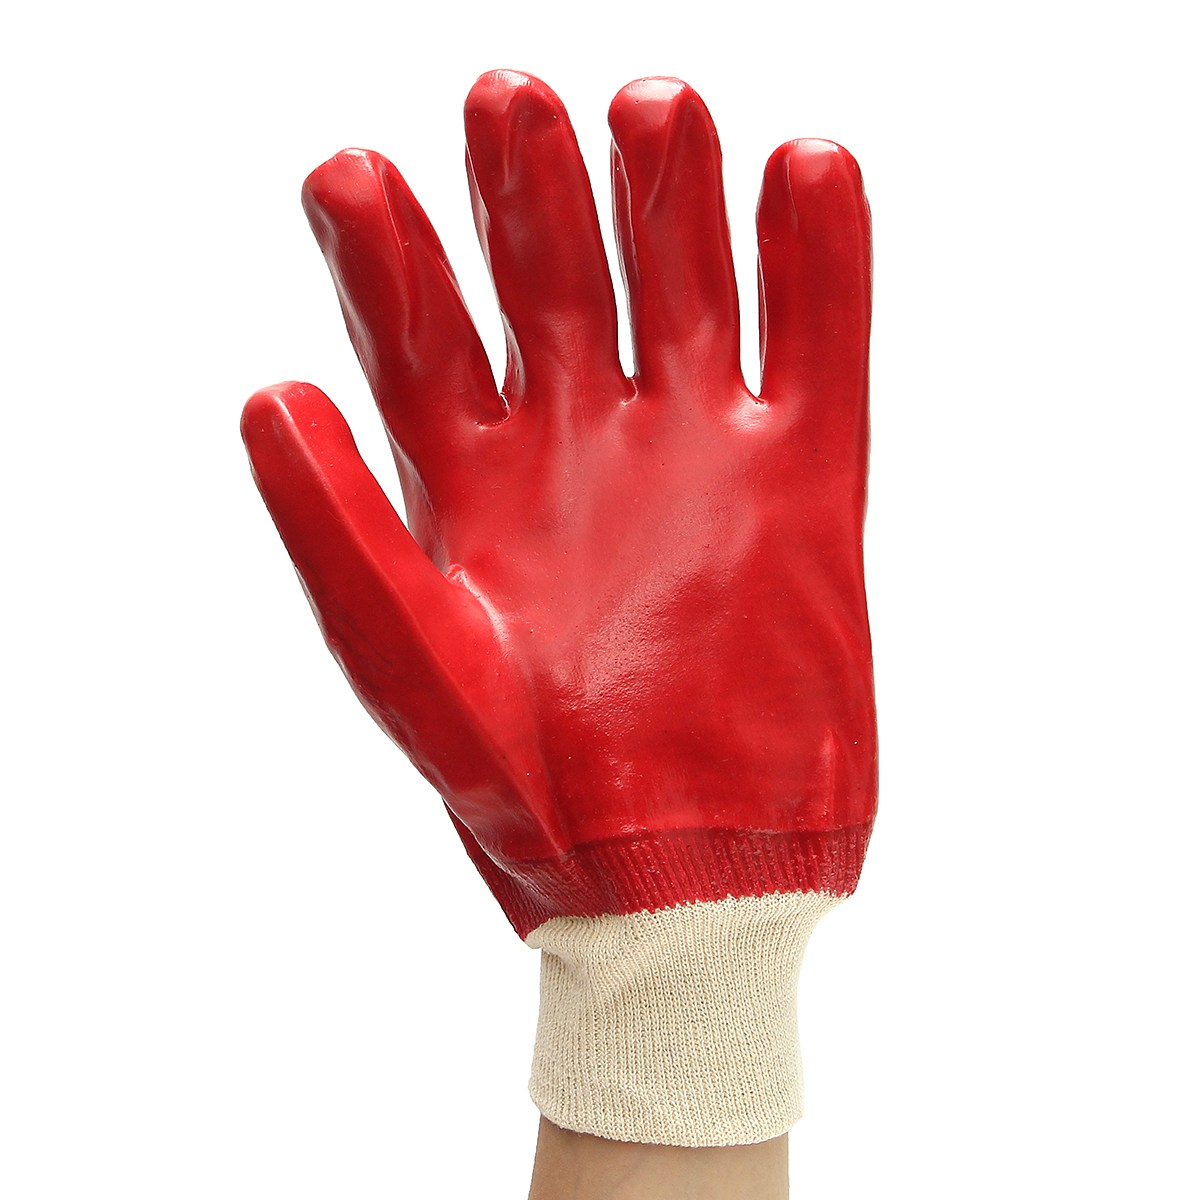 Safurance 12 Pairs PVC Gloves Knitted Wrist Red Chemical Safety Anti skid Waterproof Workplace Safety Hand Protection simplicity wholesale 2pr set knitted touchscreen gloves